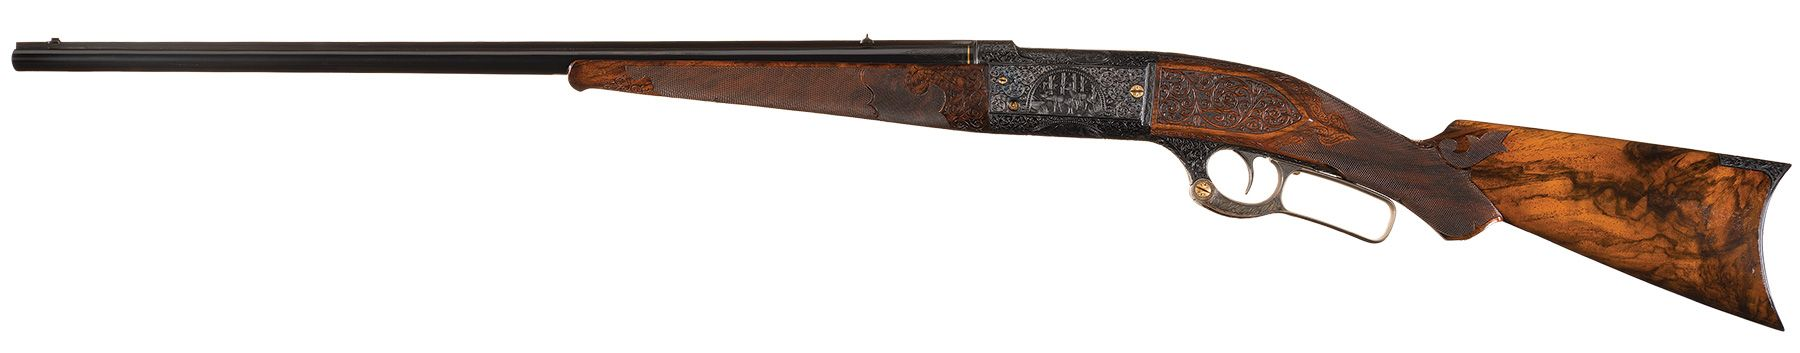 Monarch Grade Savage Model 1899 rifle